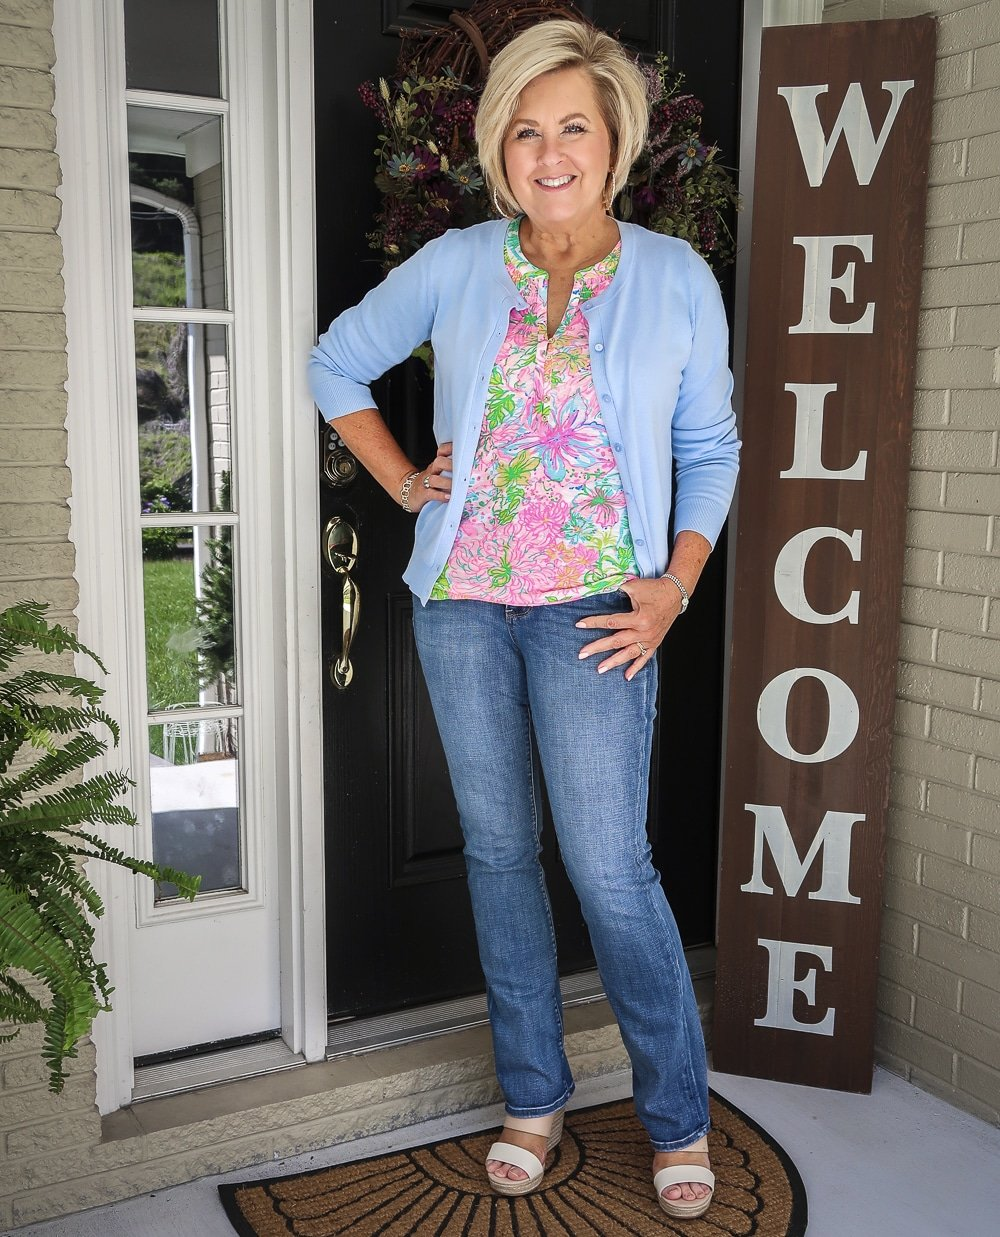 Fashion Blogger 50 Is Not Old is wearing a baby blue cardigan and a Lilly Pulitzer top with jeans and espadrille sandals